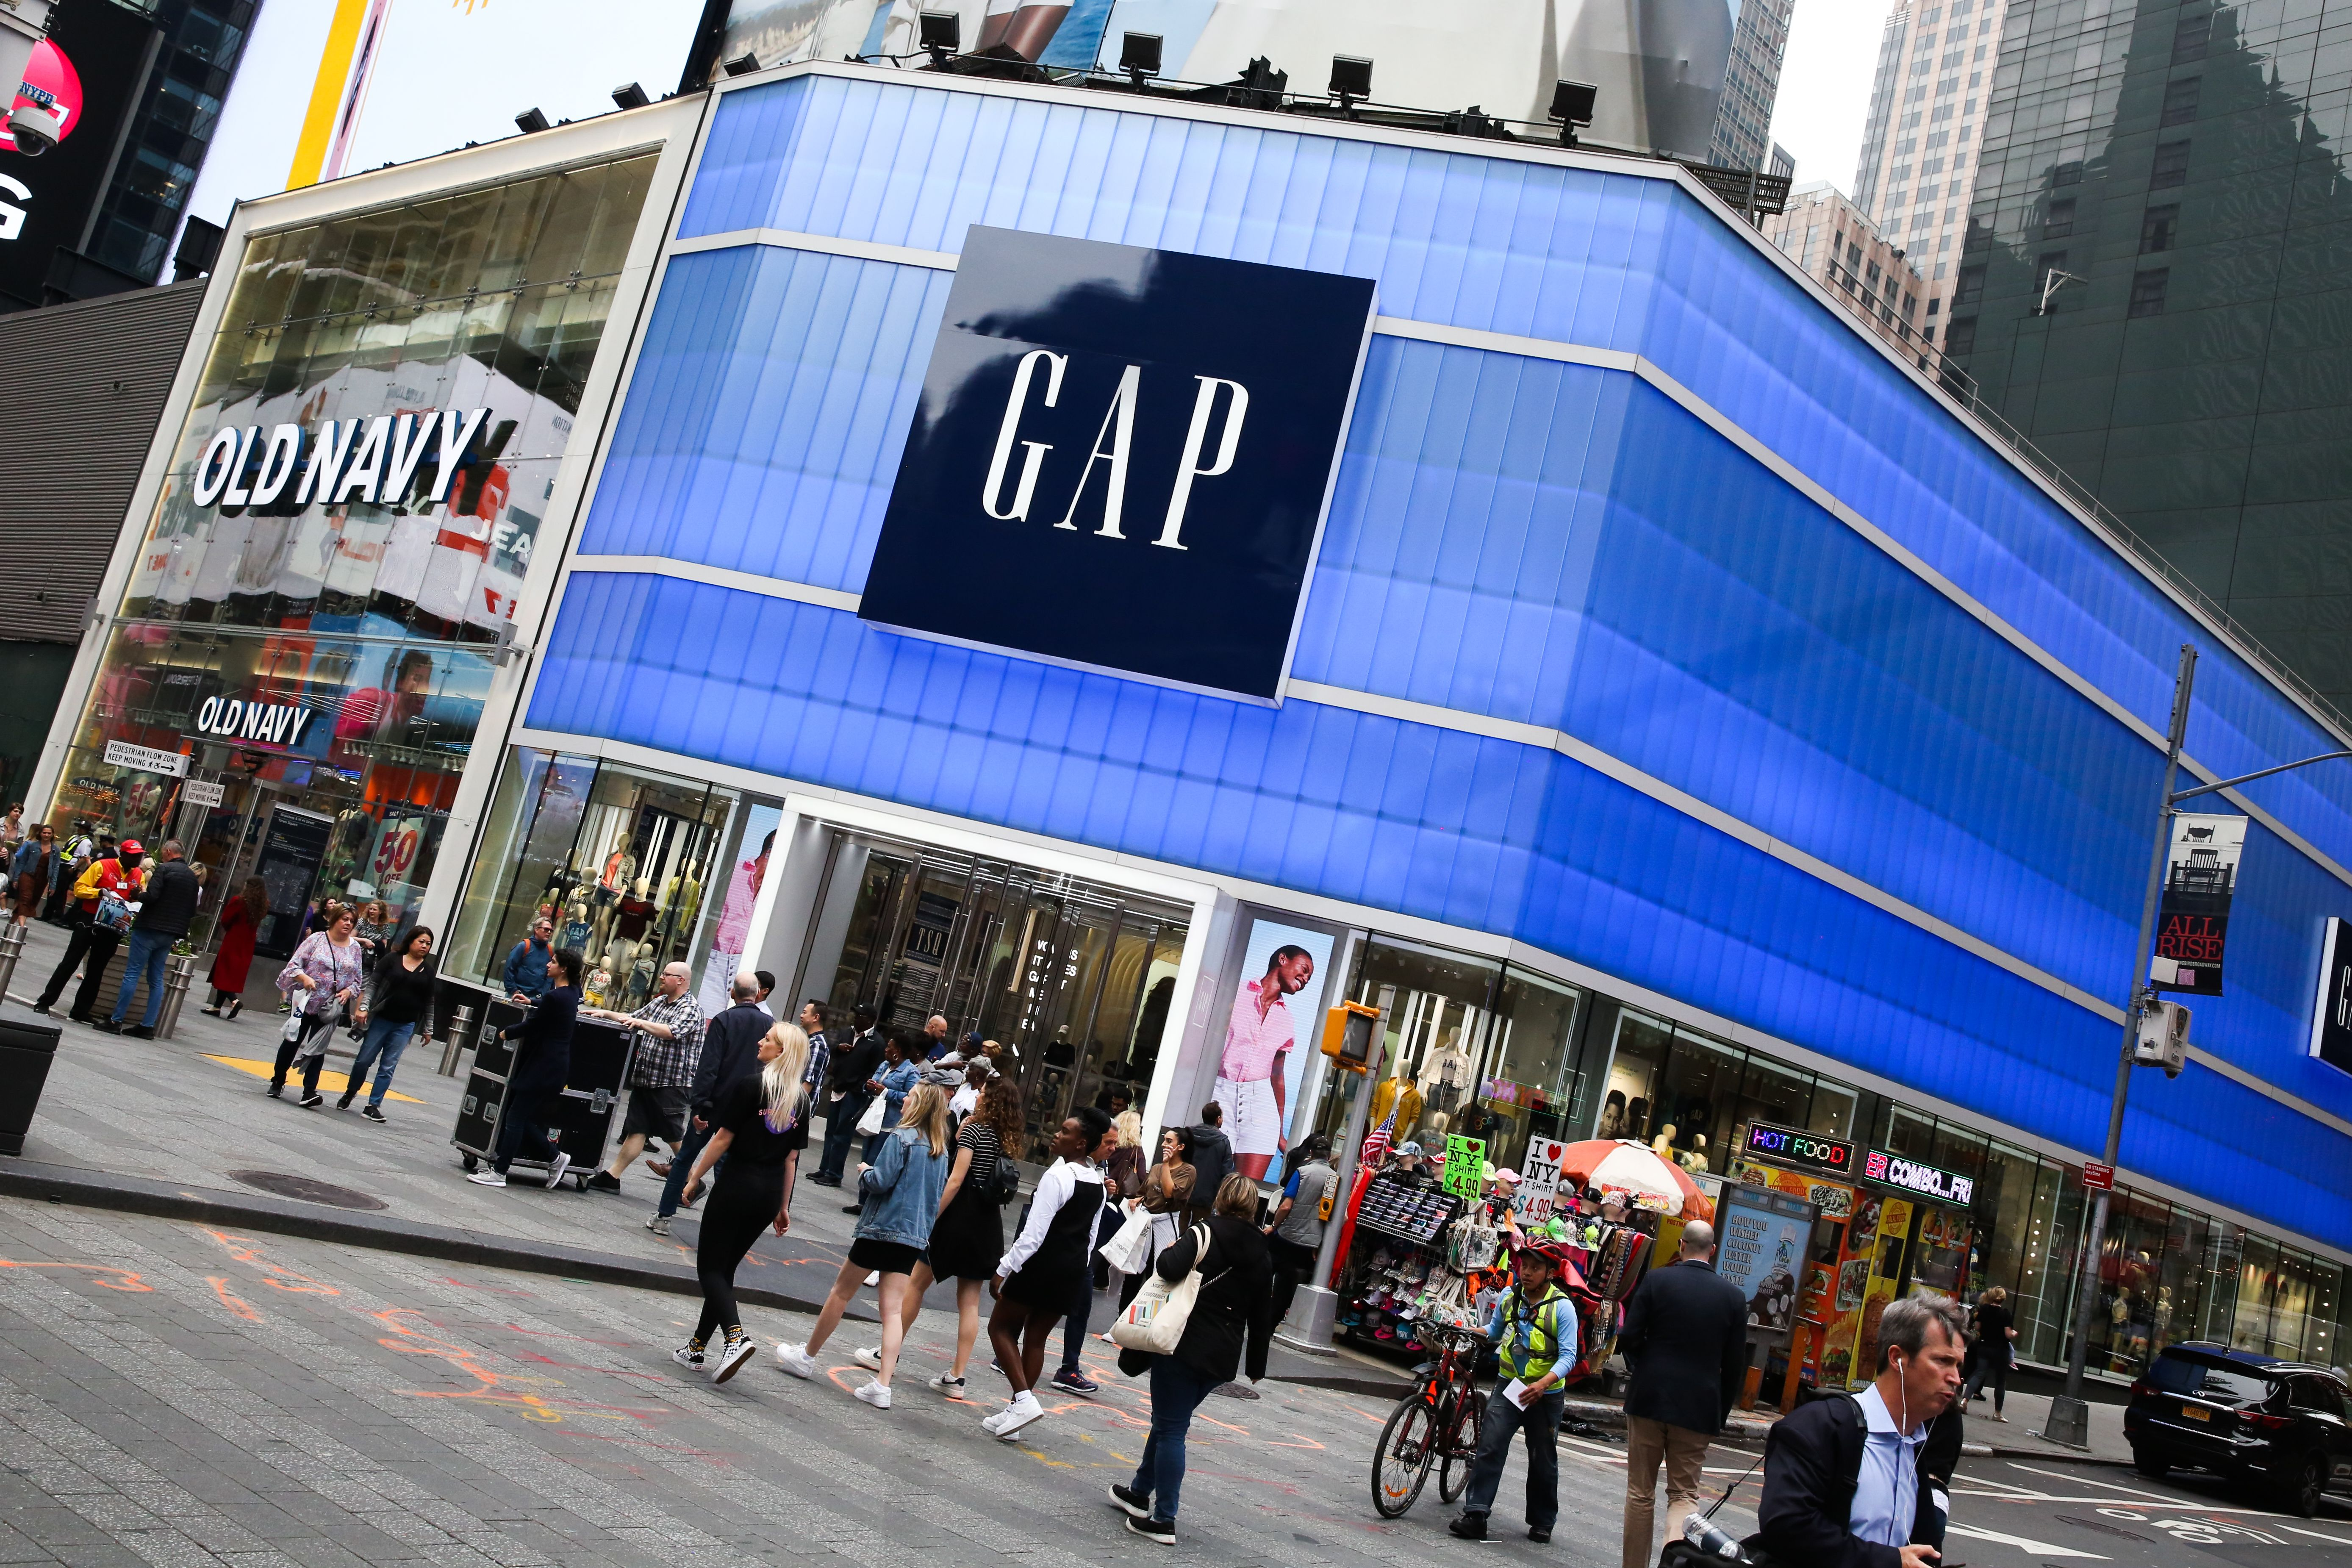 Gap's ad campaign tries to clarify its identity ahead of Old Navy spinoff